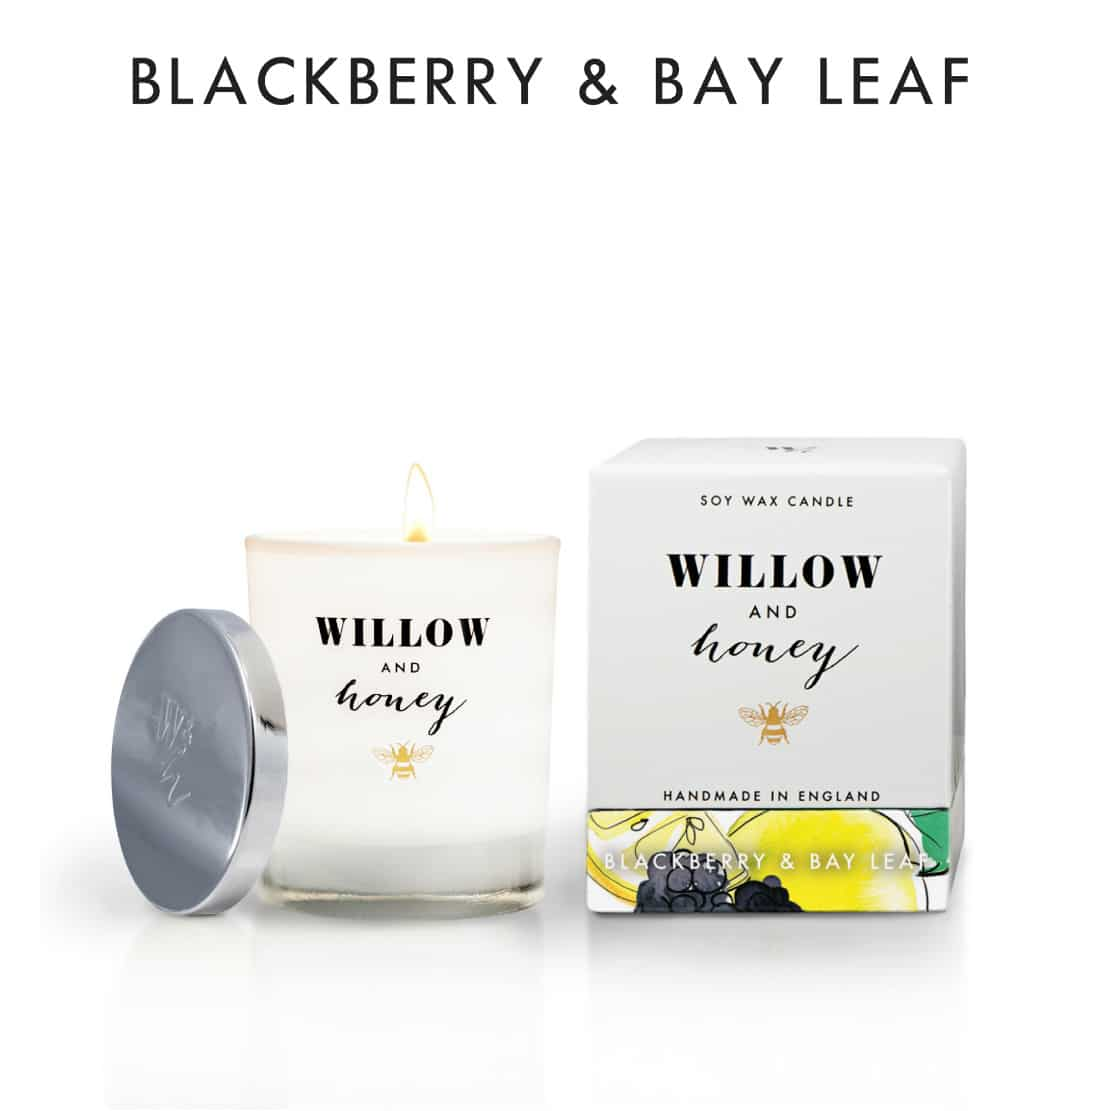 Willow and Honey Blackberry and Bay Leaf Candle 220g